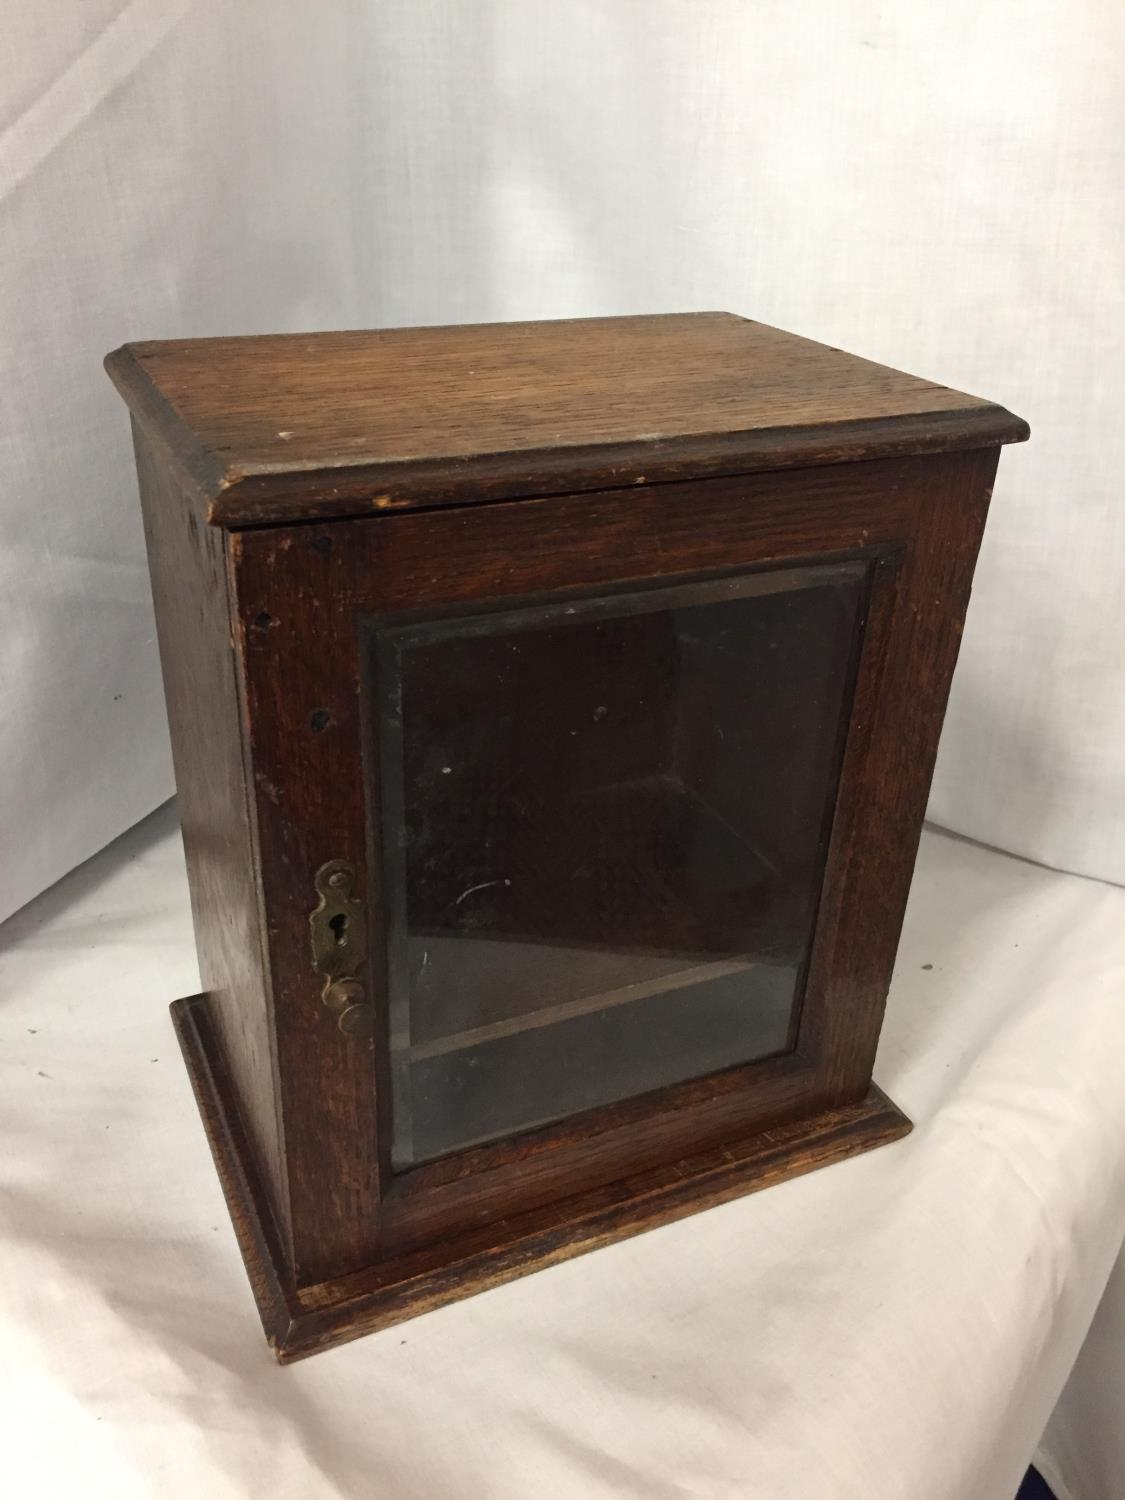 AN MINATURE OAK GLASS FRONTED CABINET HEIGHT 25CM